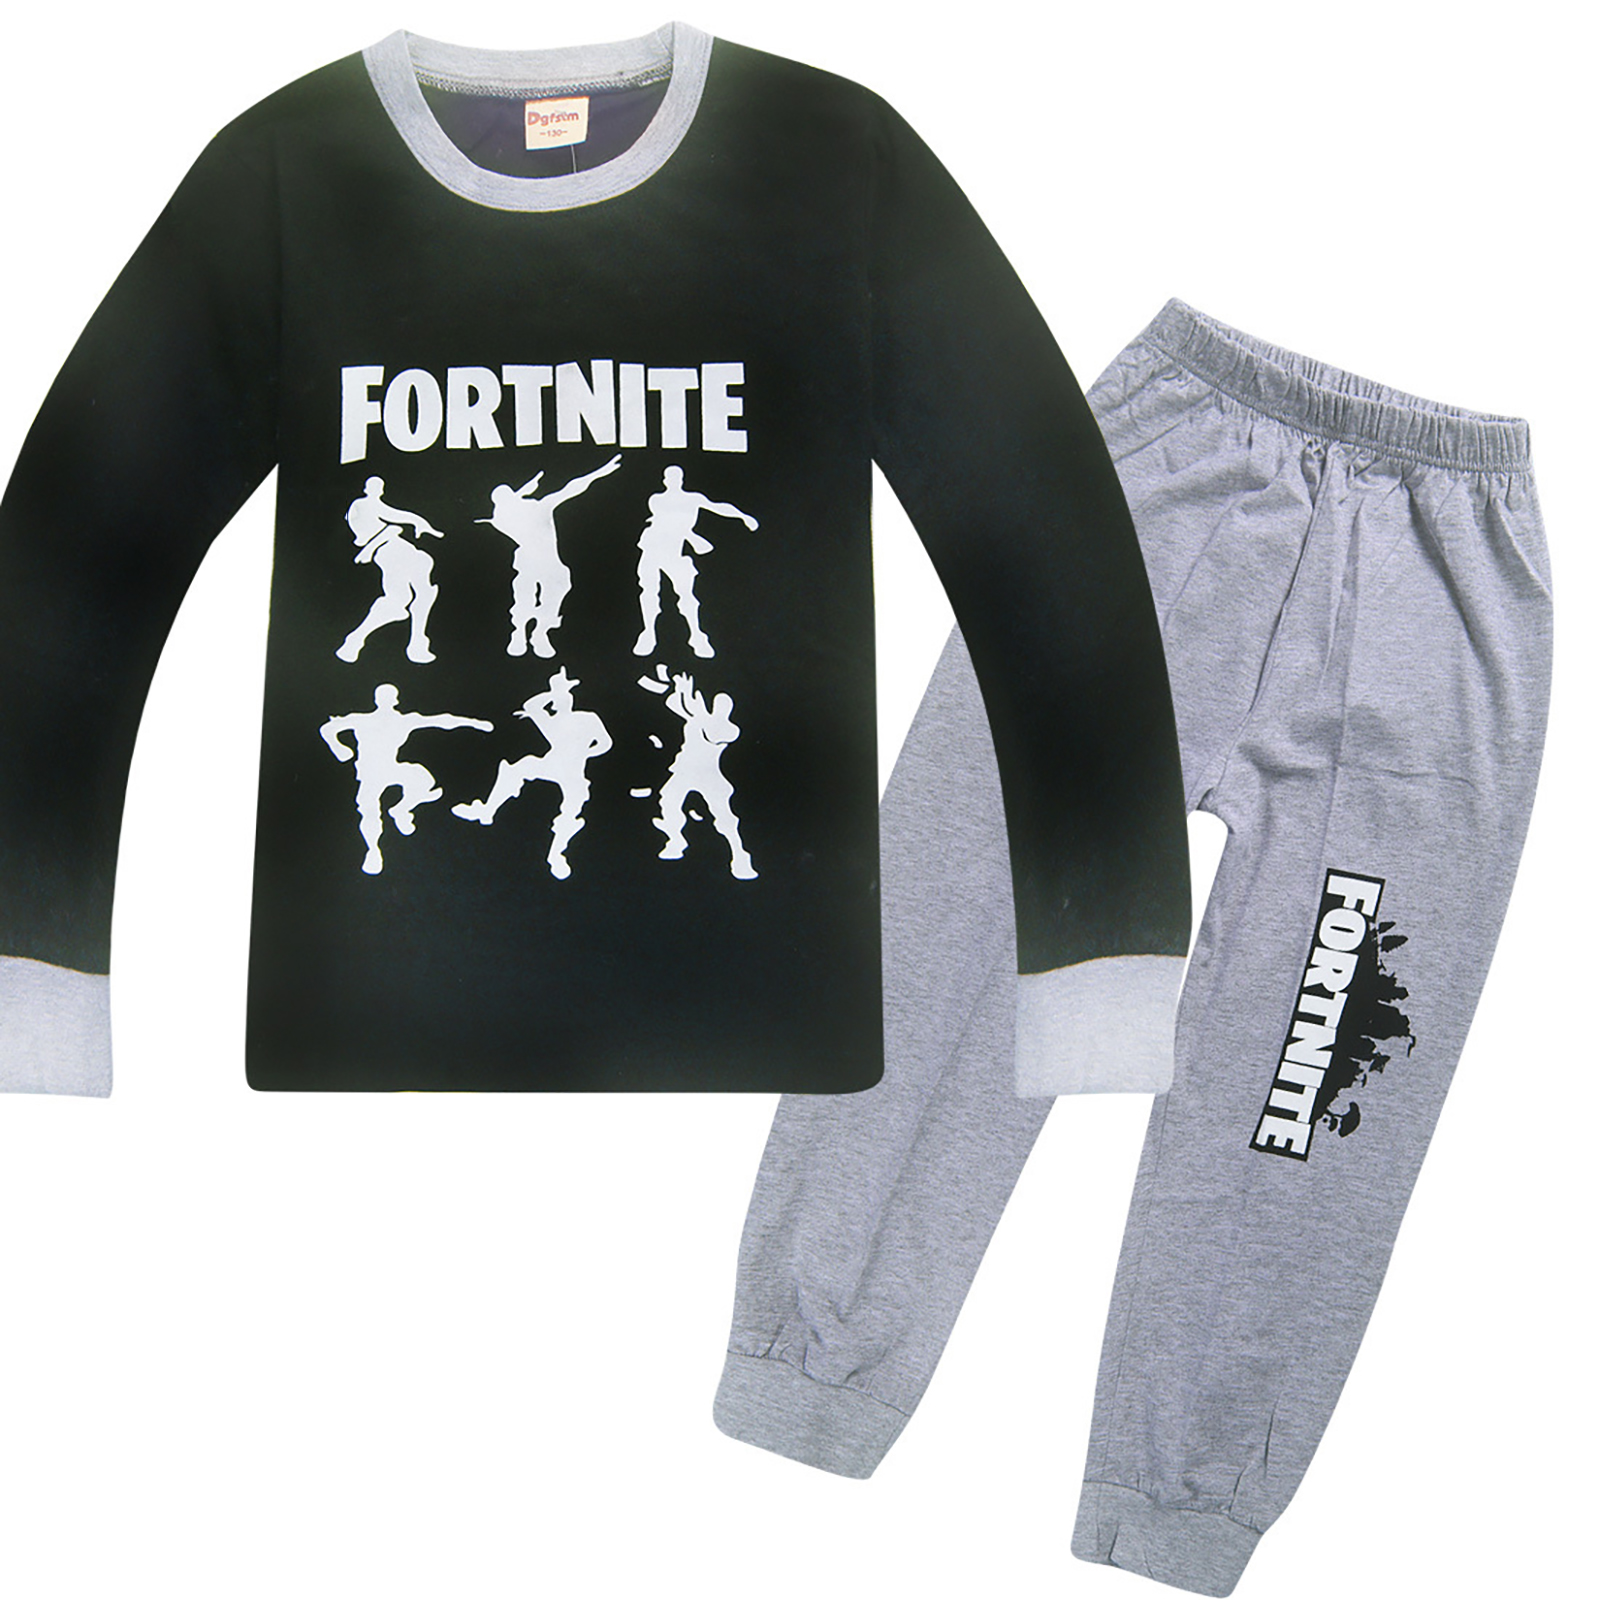 """Boys Children Fortnite Suit """"Dance Dance"""" Graphic Casual Long Sleeve Tee Shirt And Pants"""